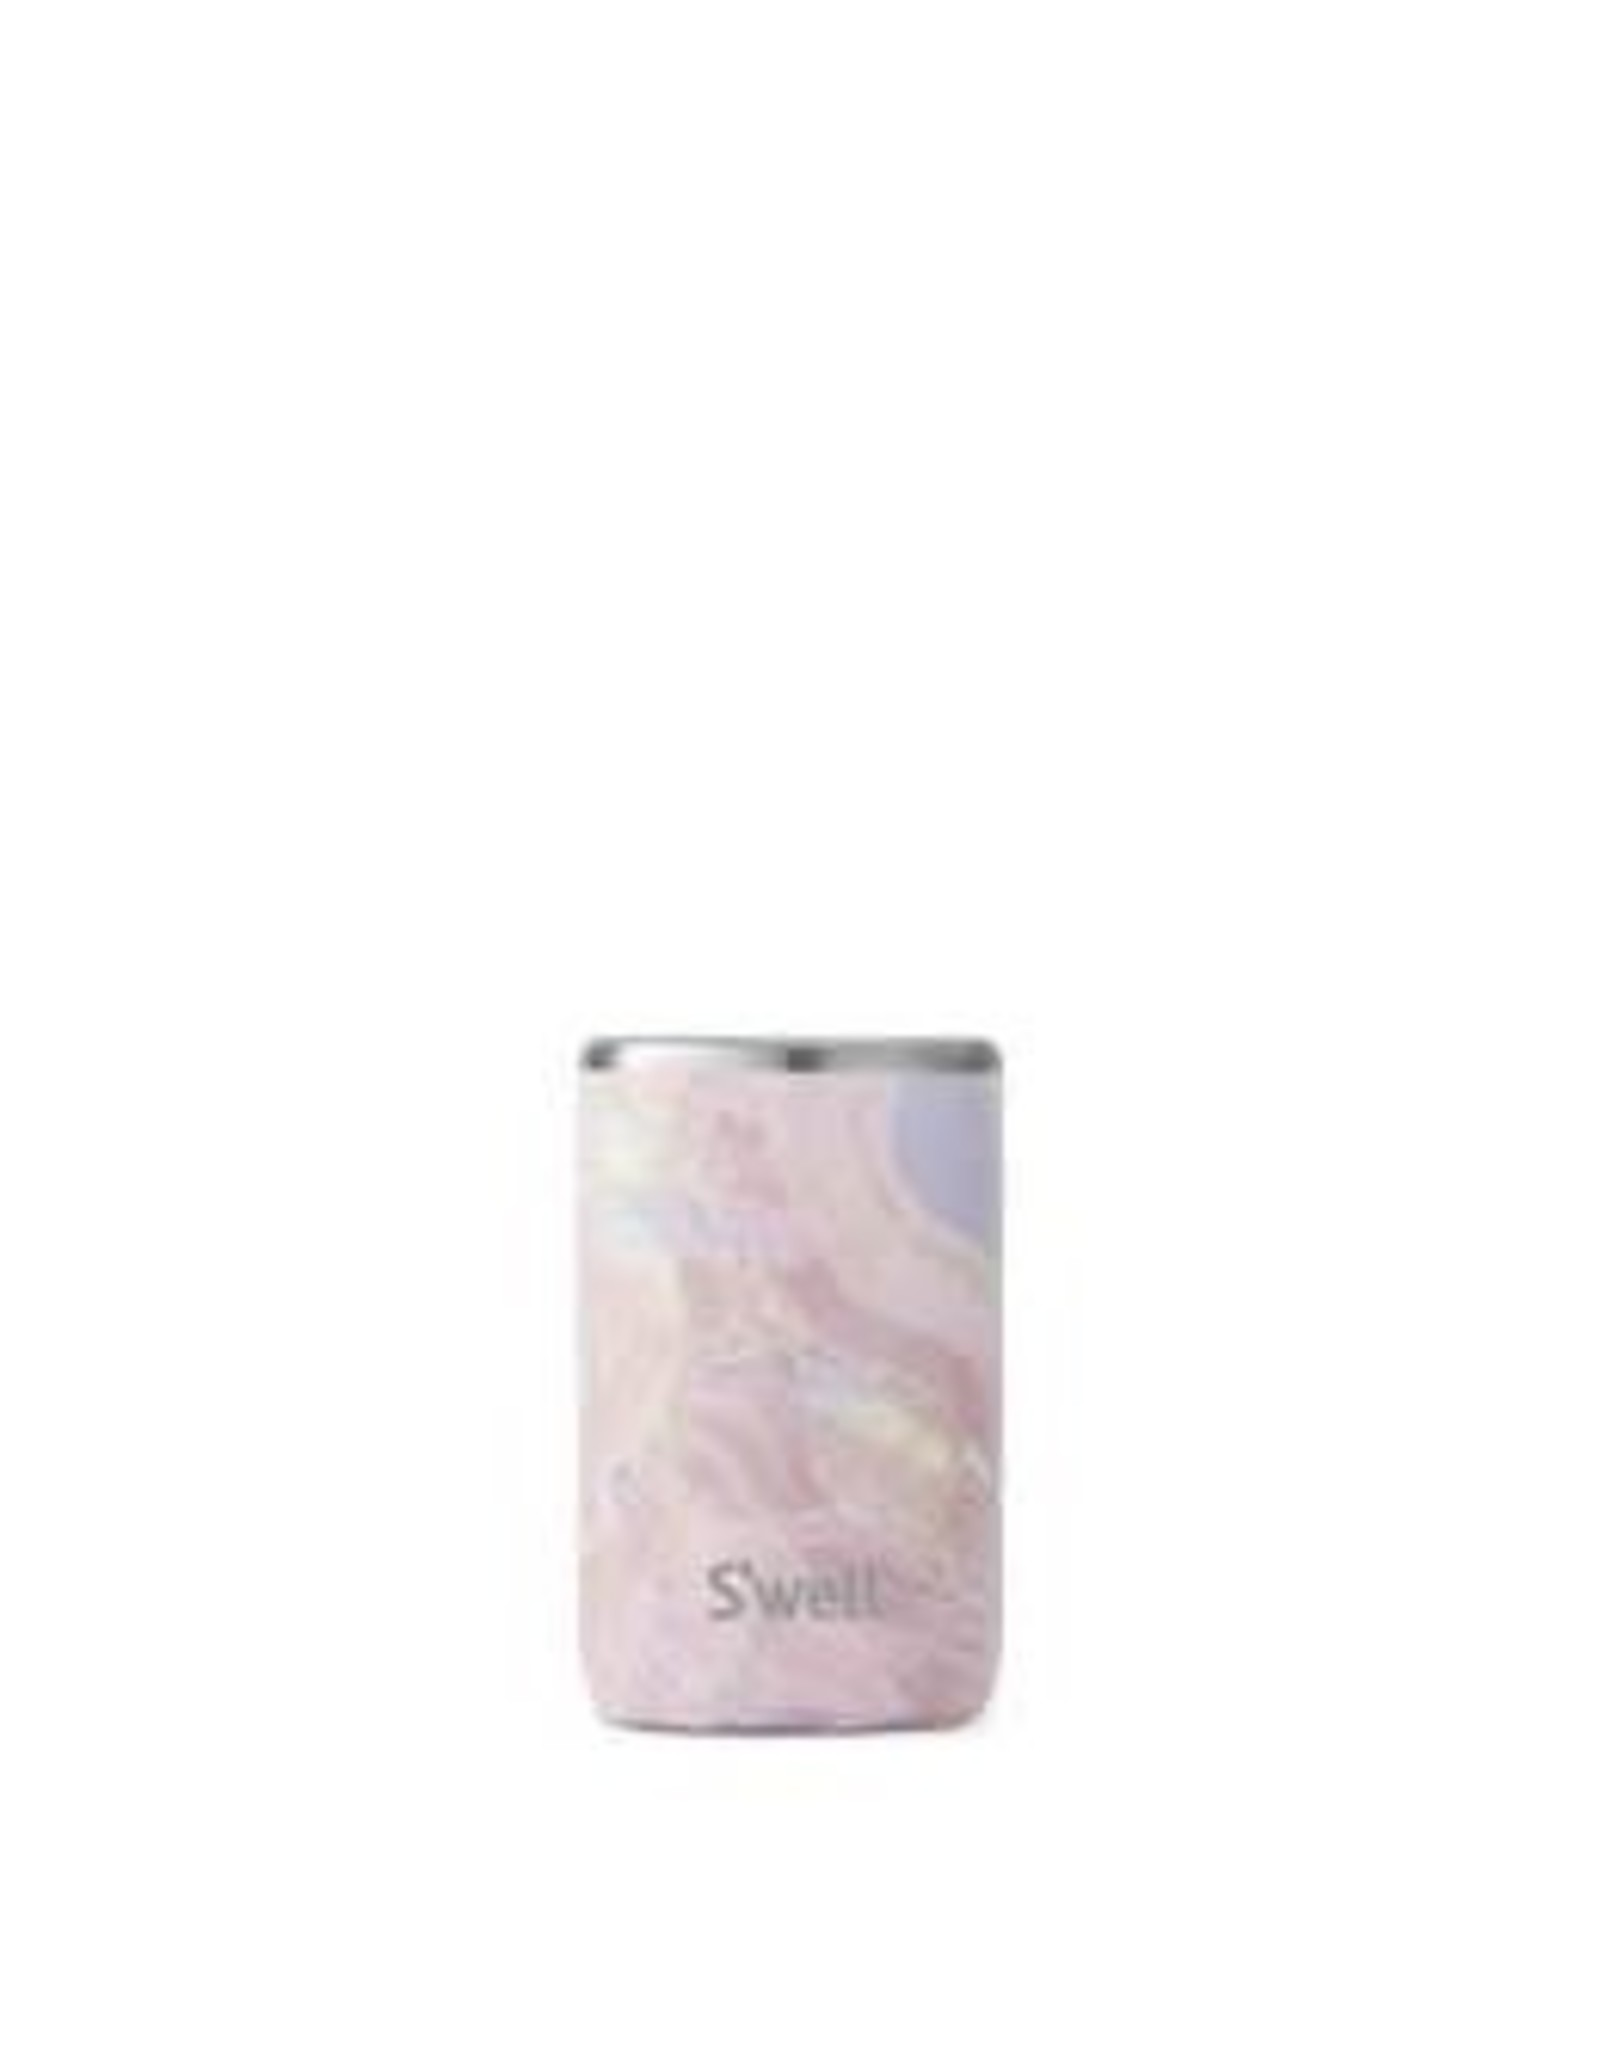 Swell Stainless Steel Drink Chiller 12oz - Geode Rose